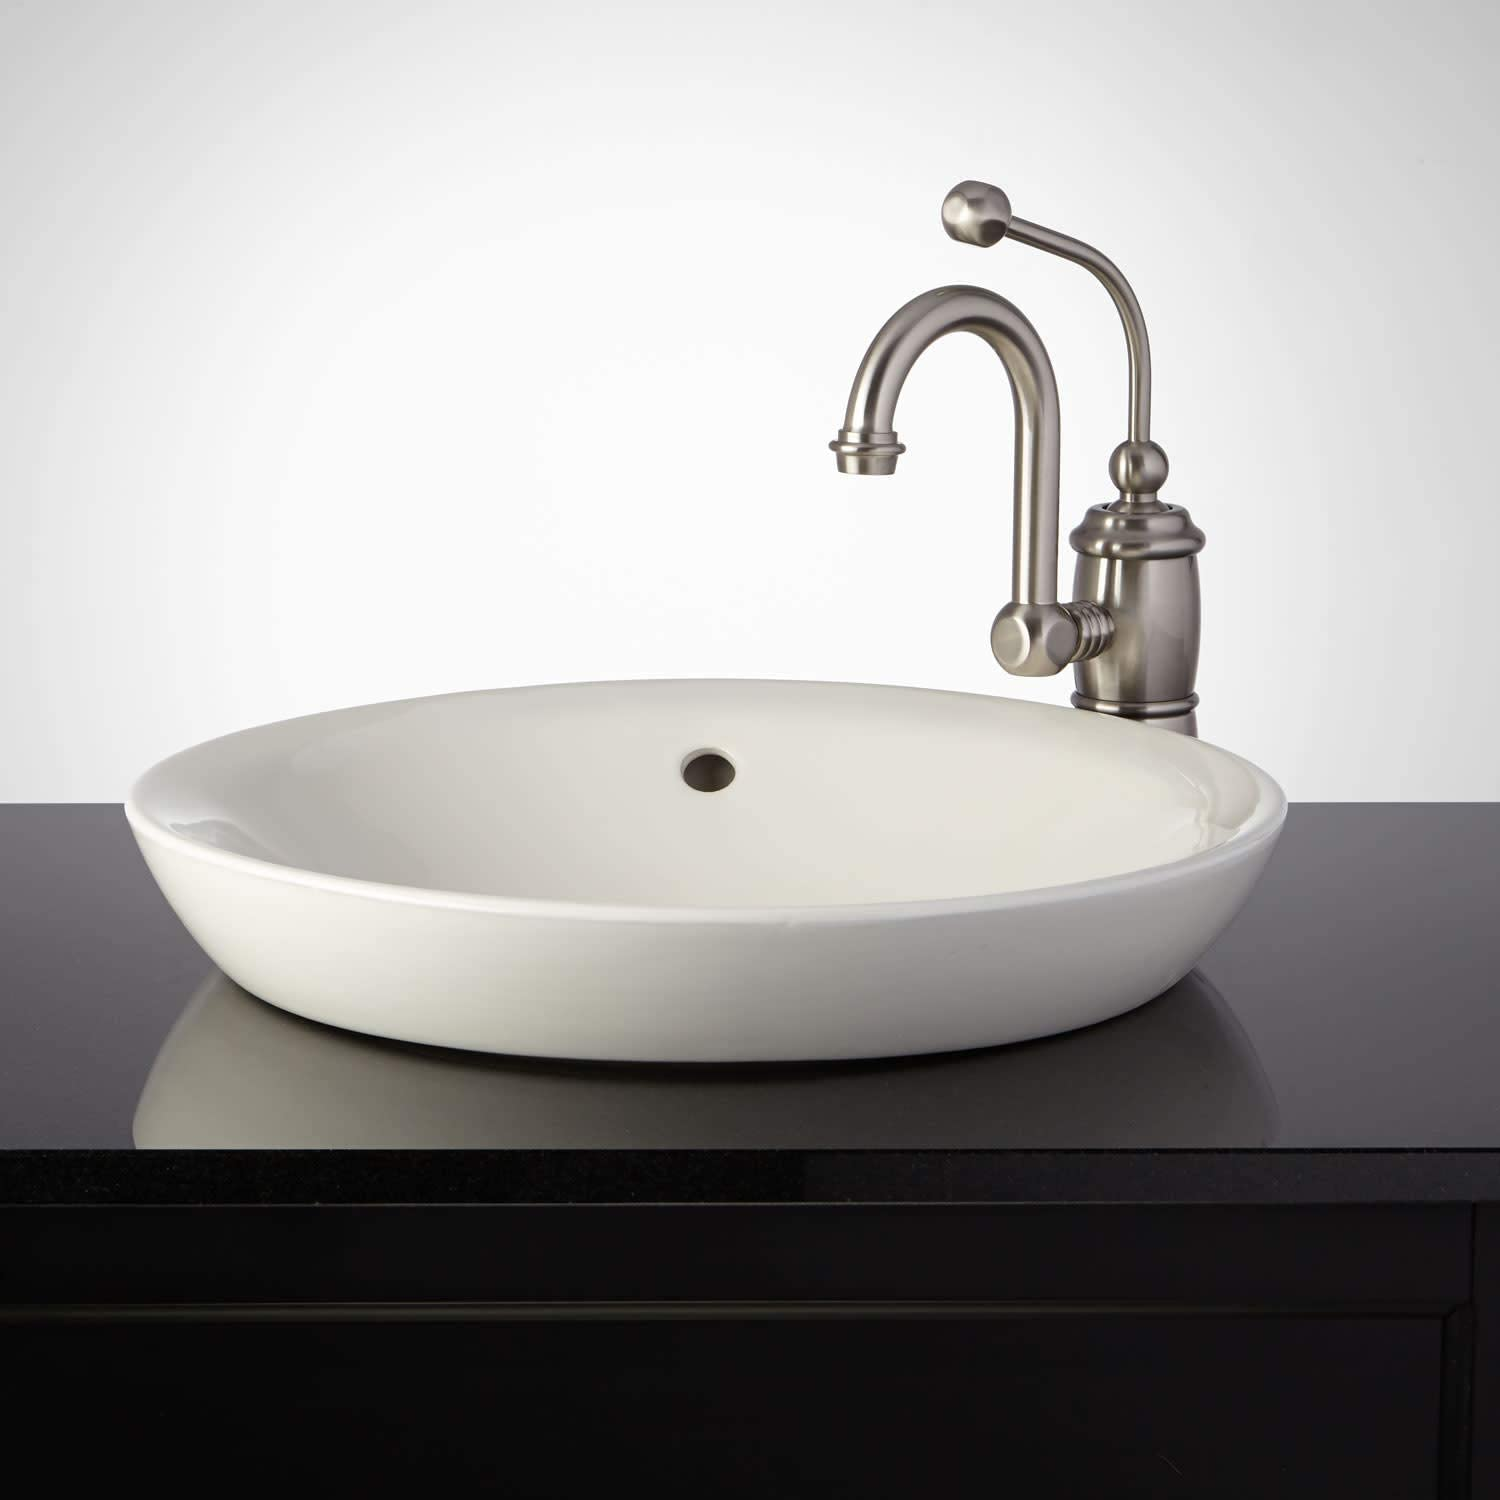 Signature Hardware 362496 Milforde 17 Porcelain Drop In Bathroom Sink